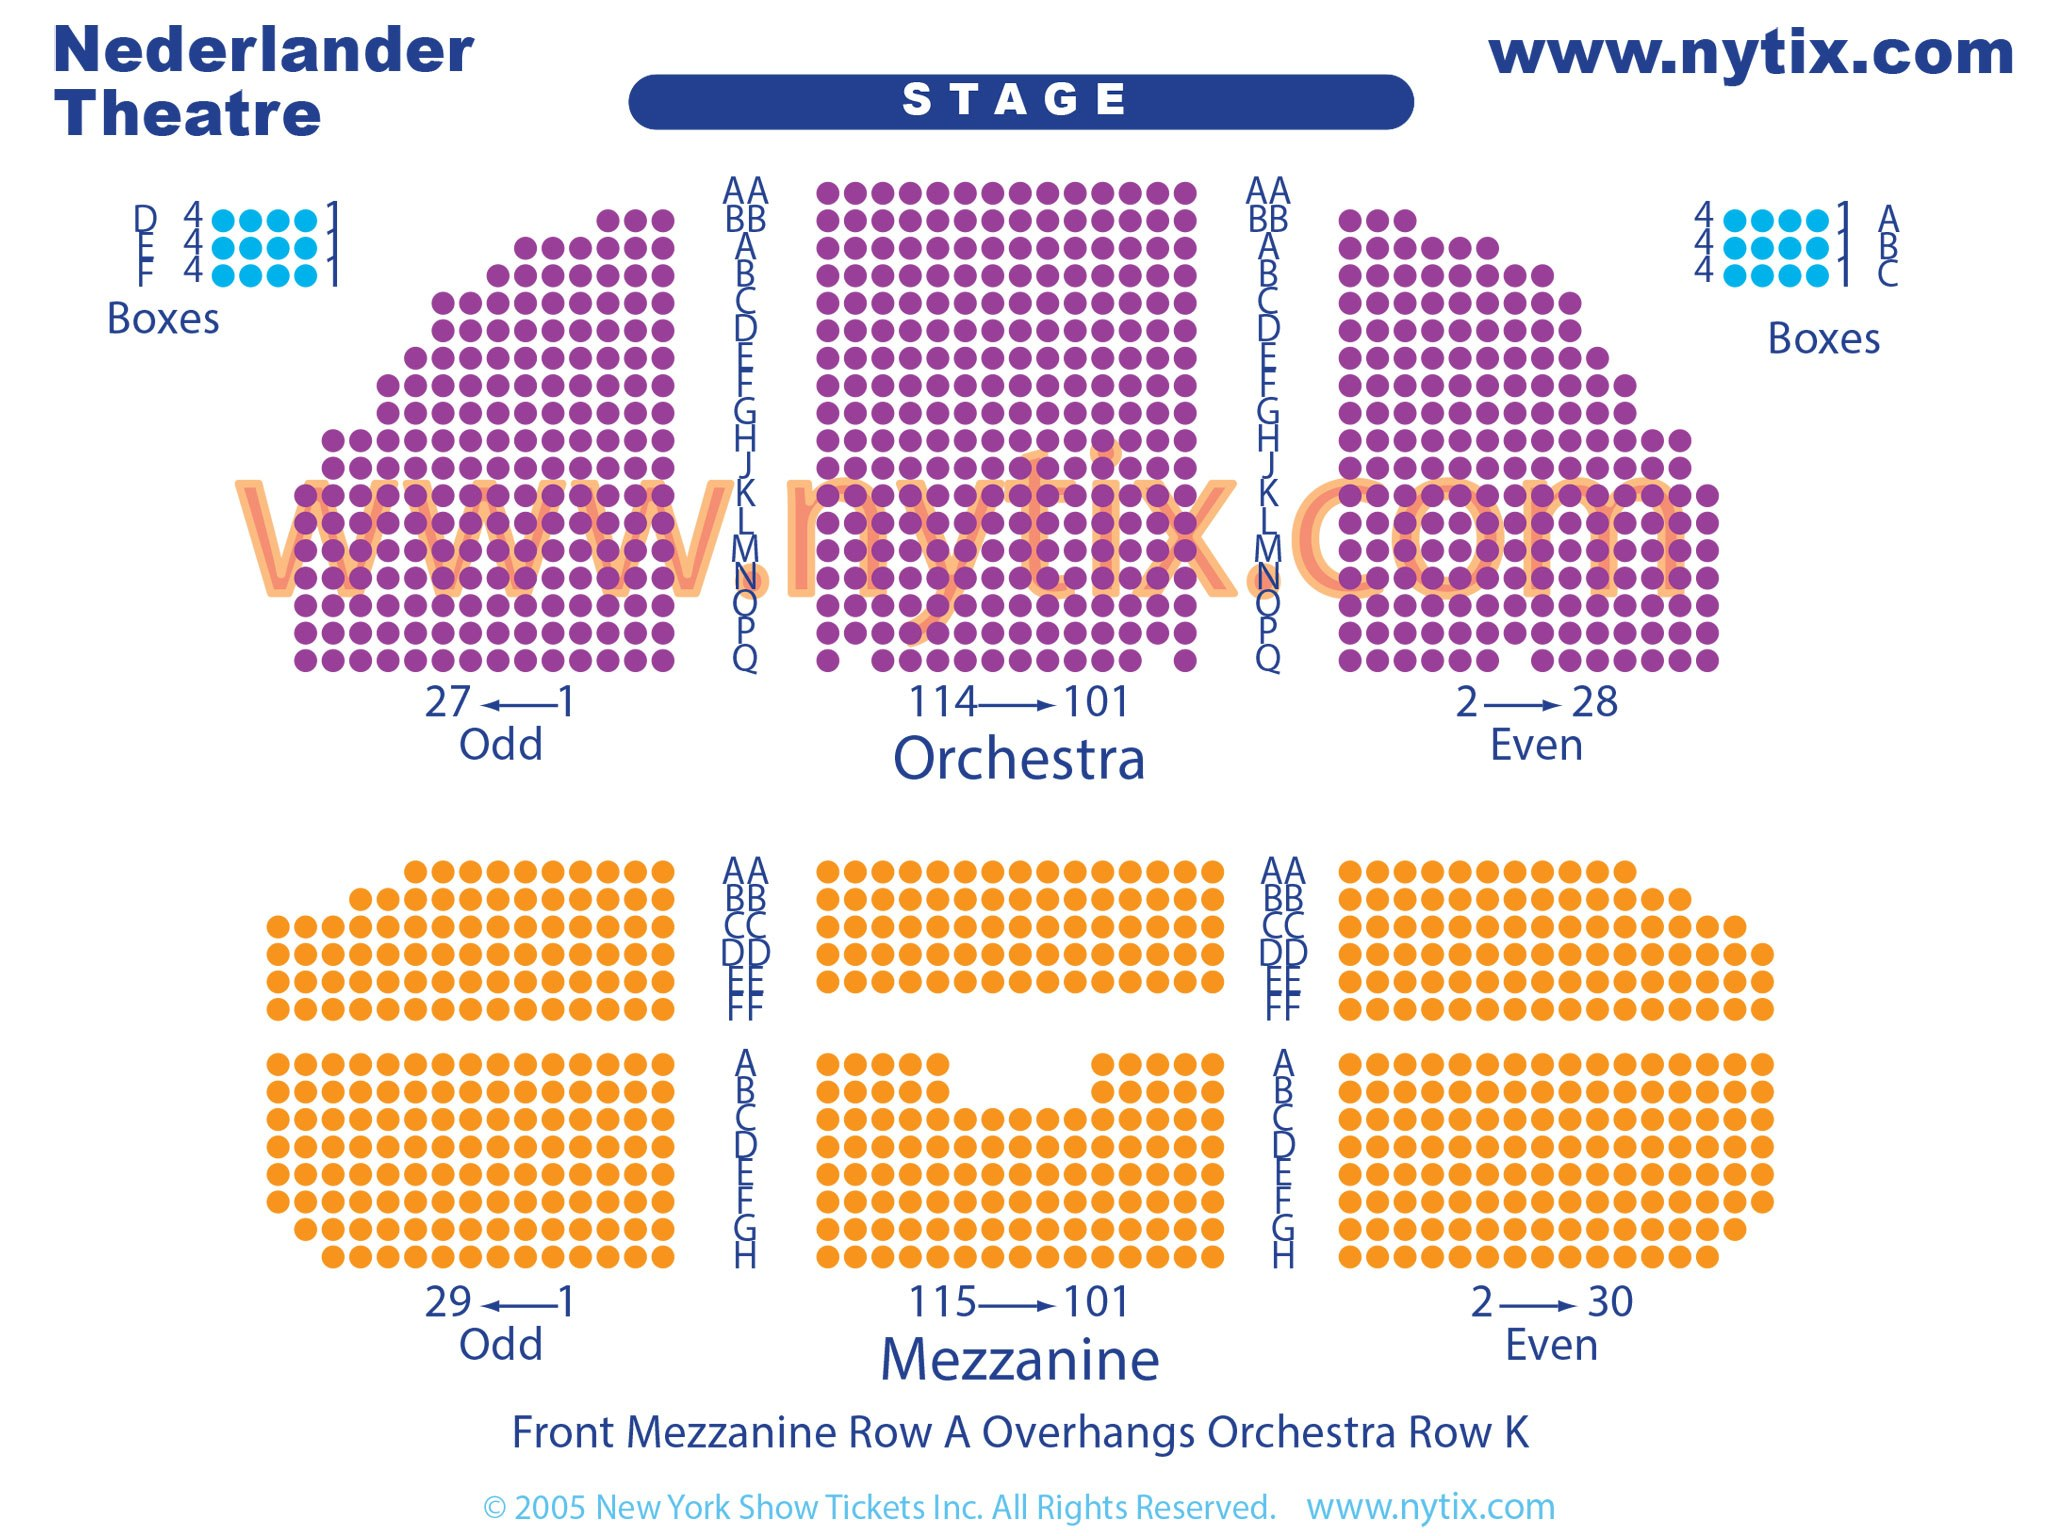 Nederlander Theatre Seating Chart